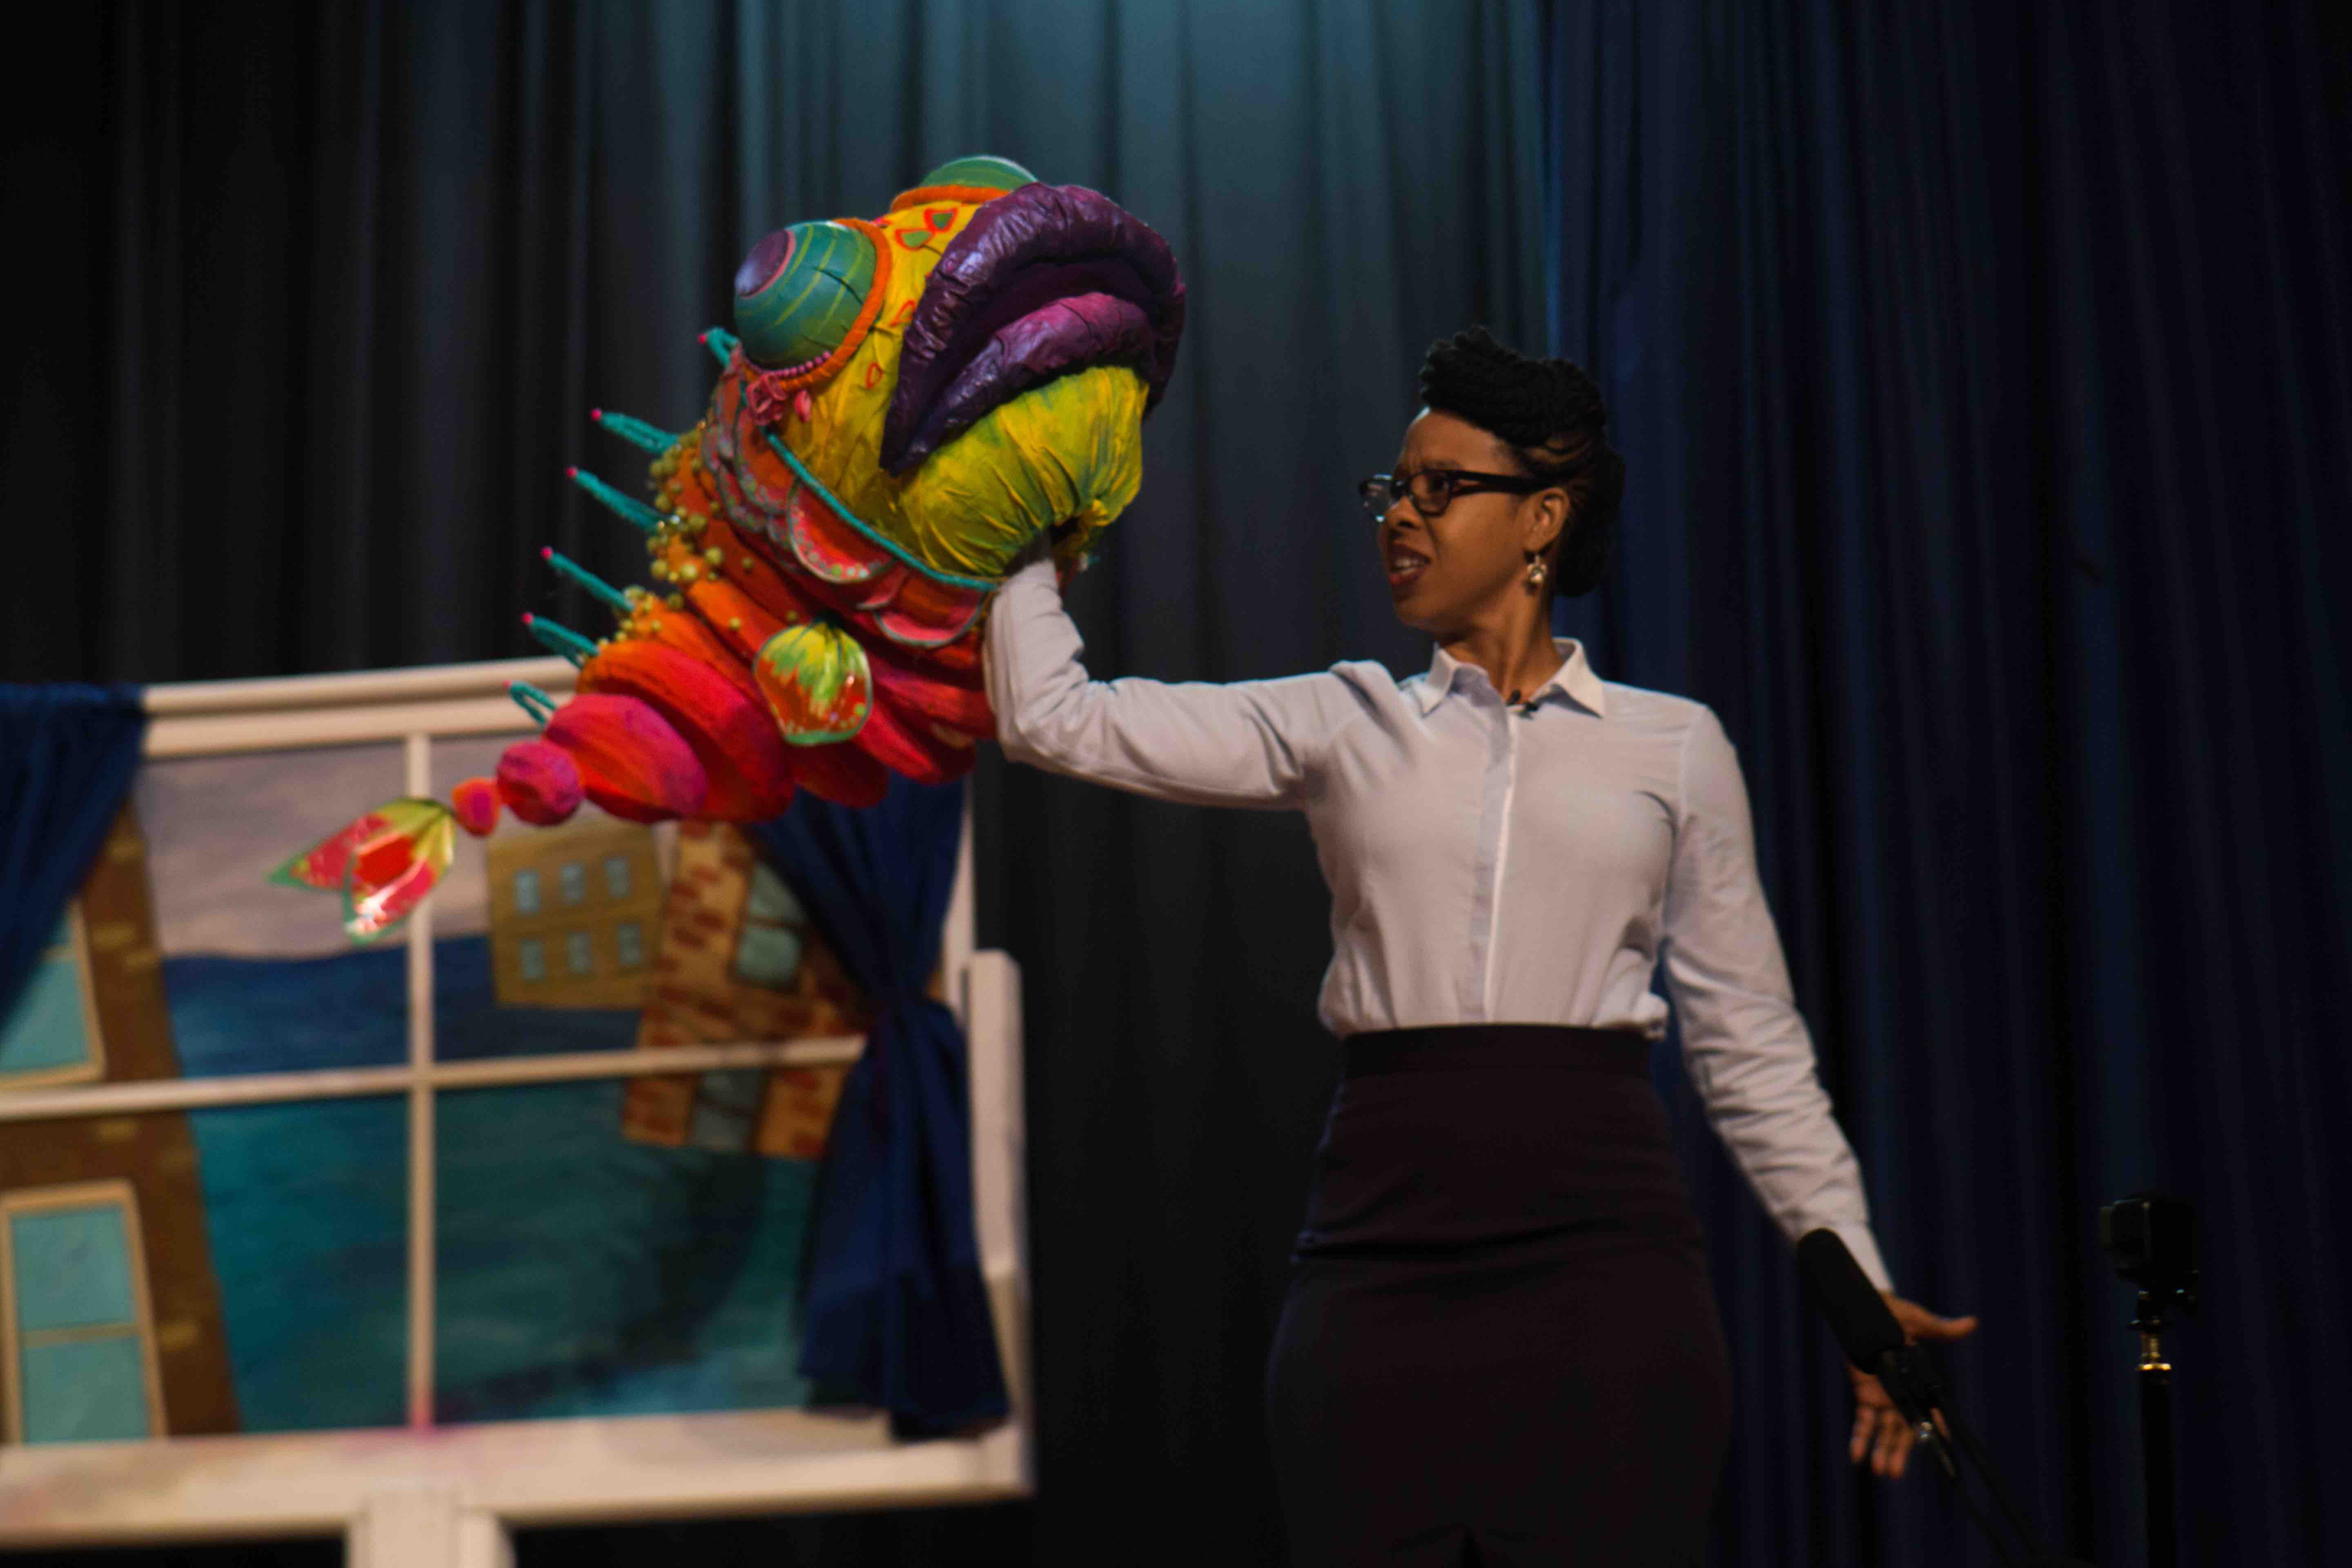 Harold of the Good Ideas, Props by Lexy Ho-Tai, Neighbors, Superhero Clubhouse performance at PS 29